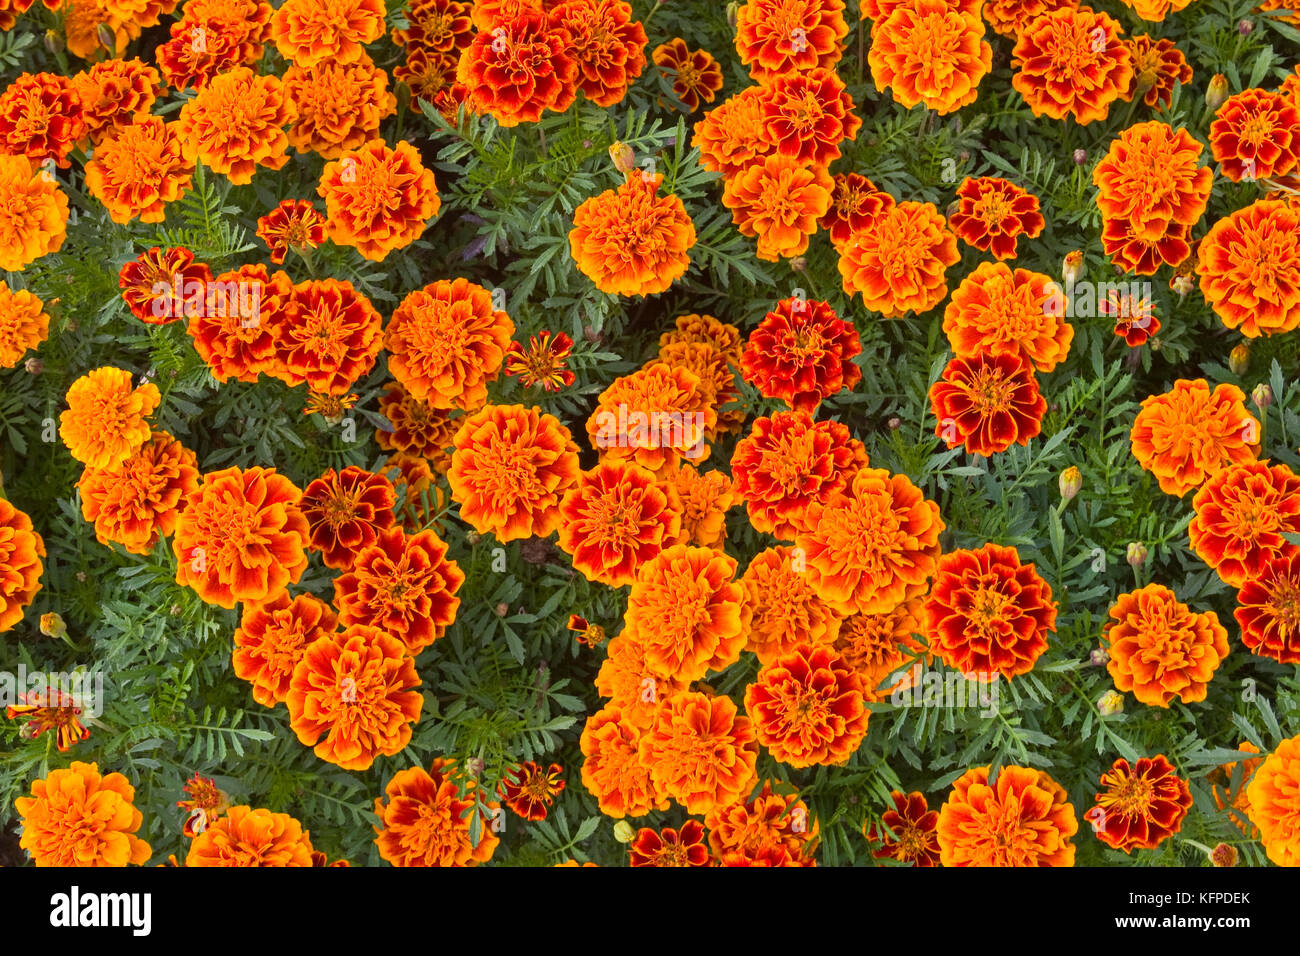 Beautiful floral background. Orange marigolds in the flowerbed close-up. Flowers Tagetes. Stock Photo